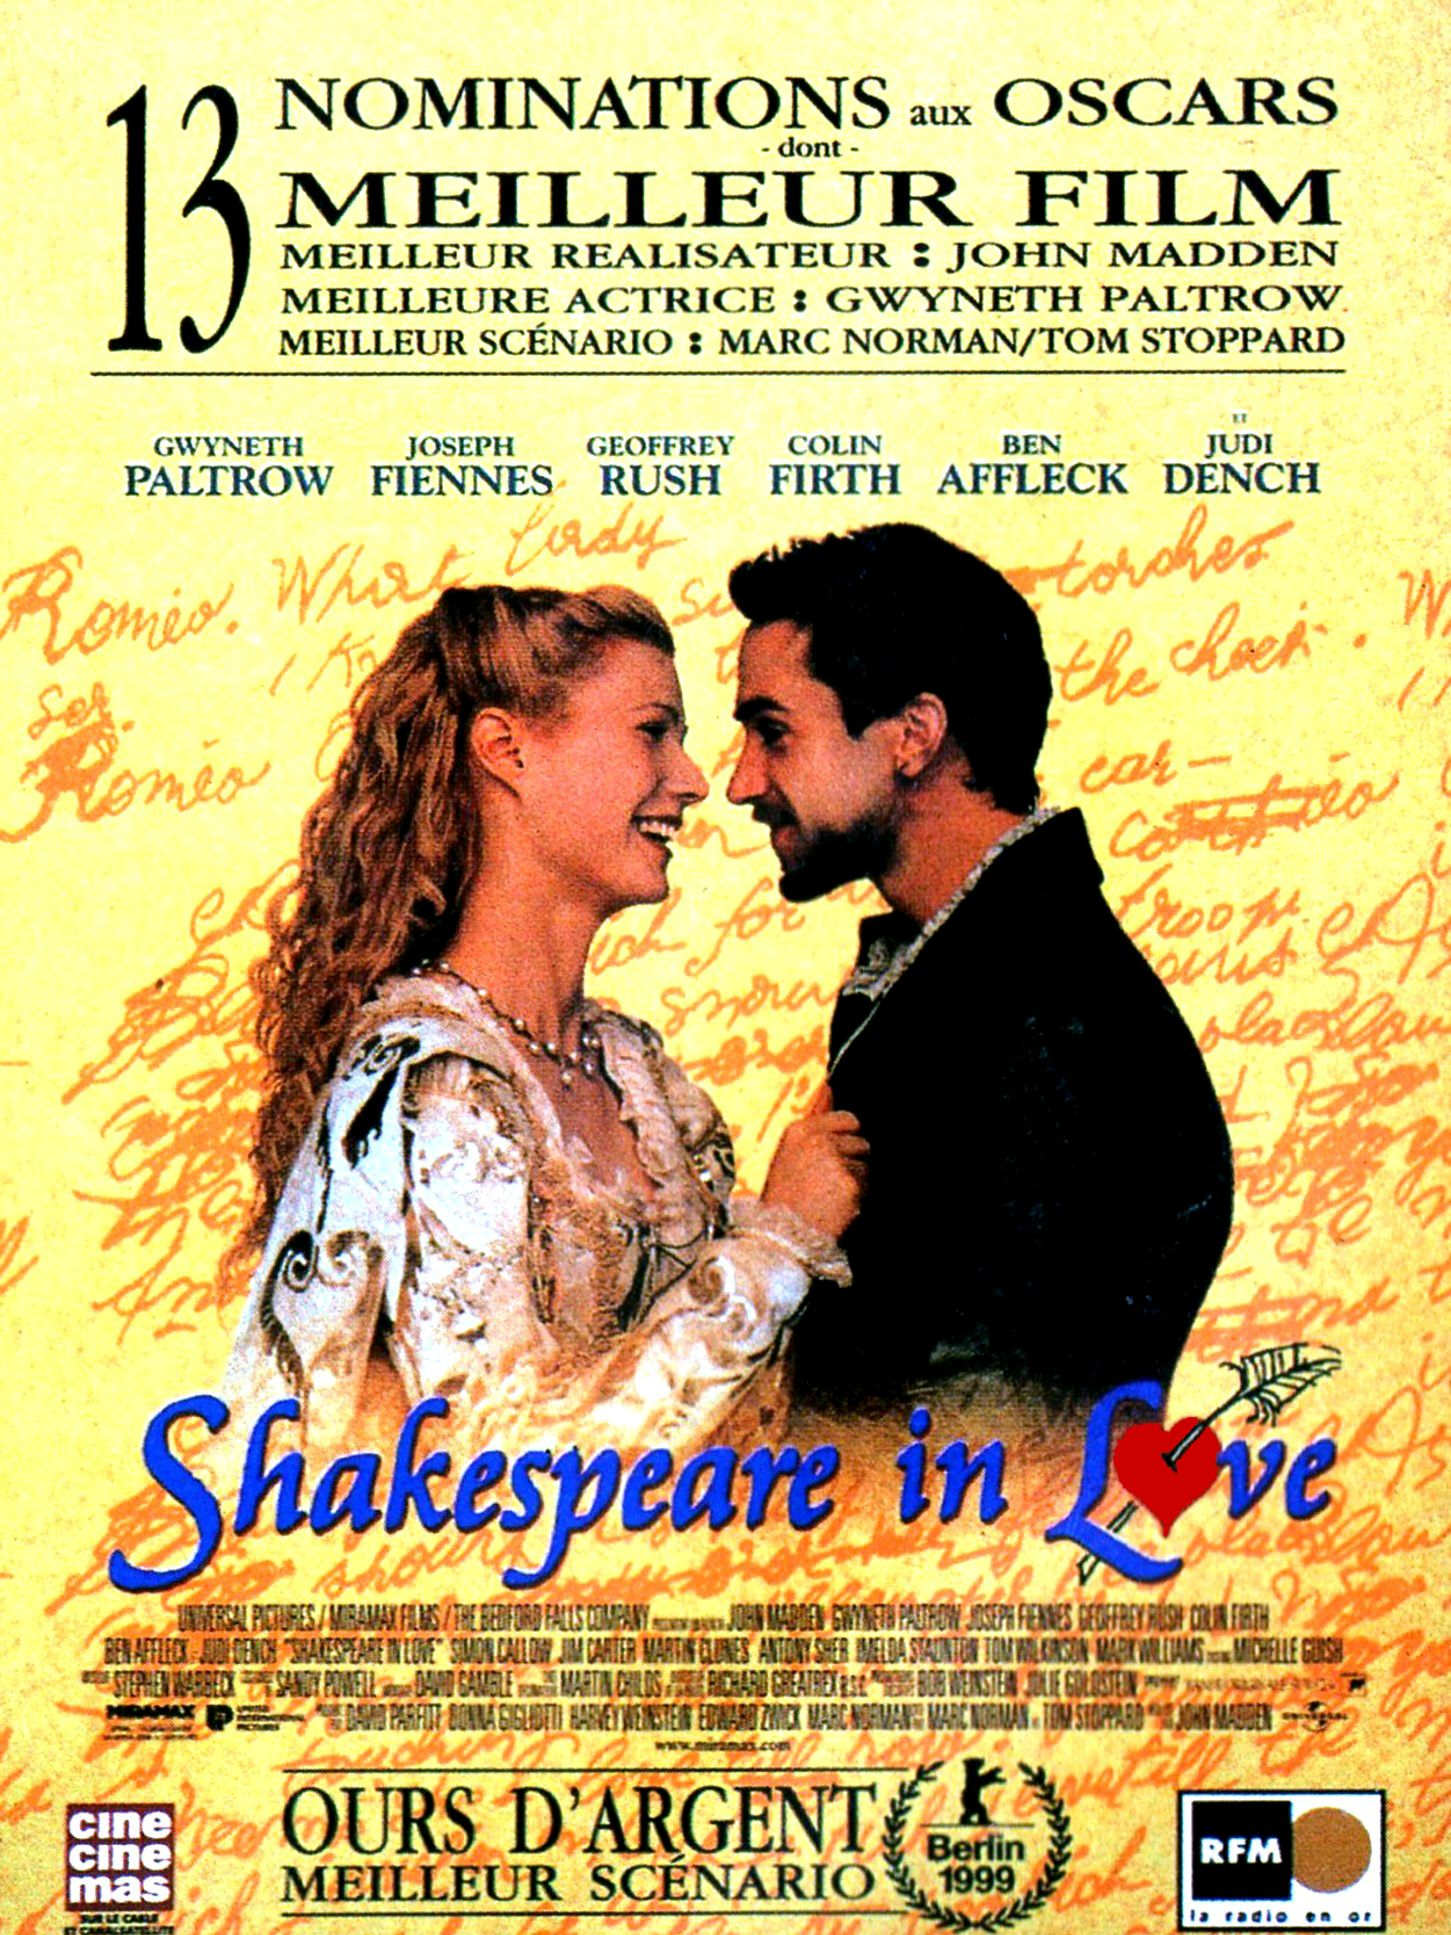 analysis of film shakespeare in love Cinematic aspects of film in [shakespeare in love] movement shots lighting editing focus sound angles mise-en-scène: ----meaning placing on the stage, this french term is used to define the arrangement of aspects within a scene fitting of the scenario.